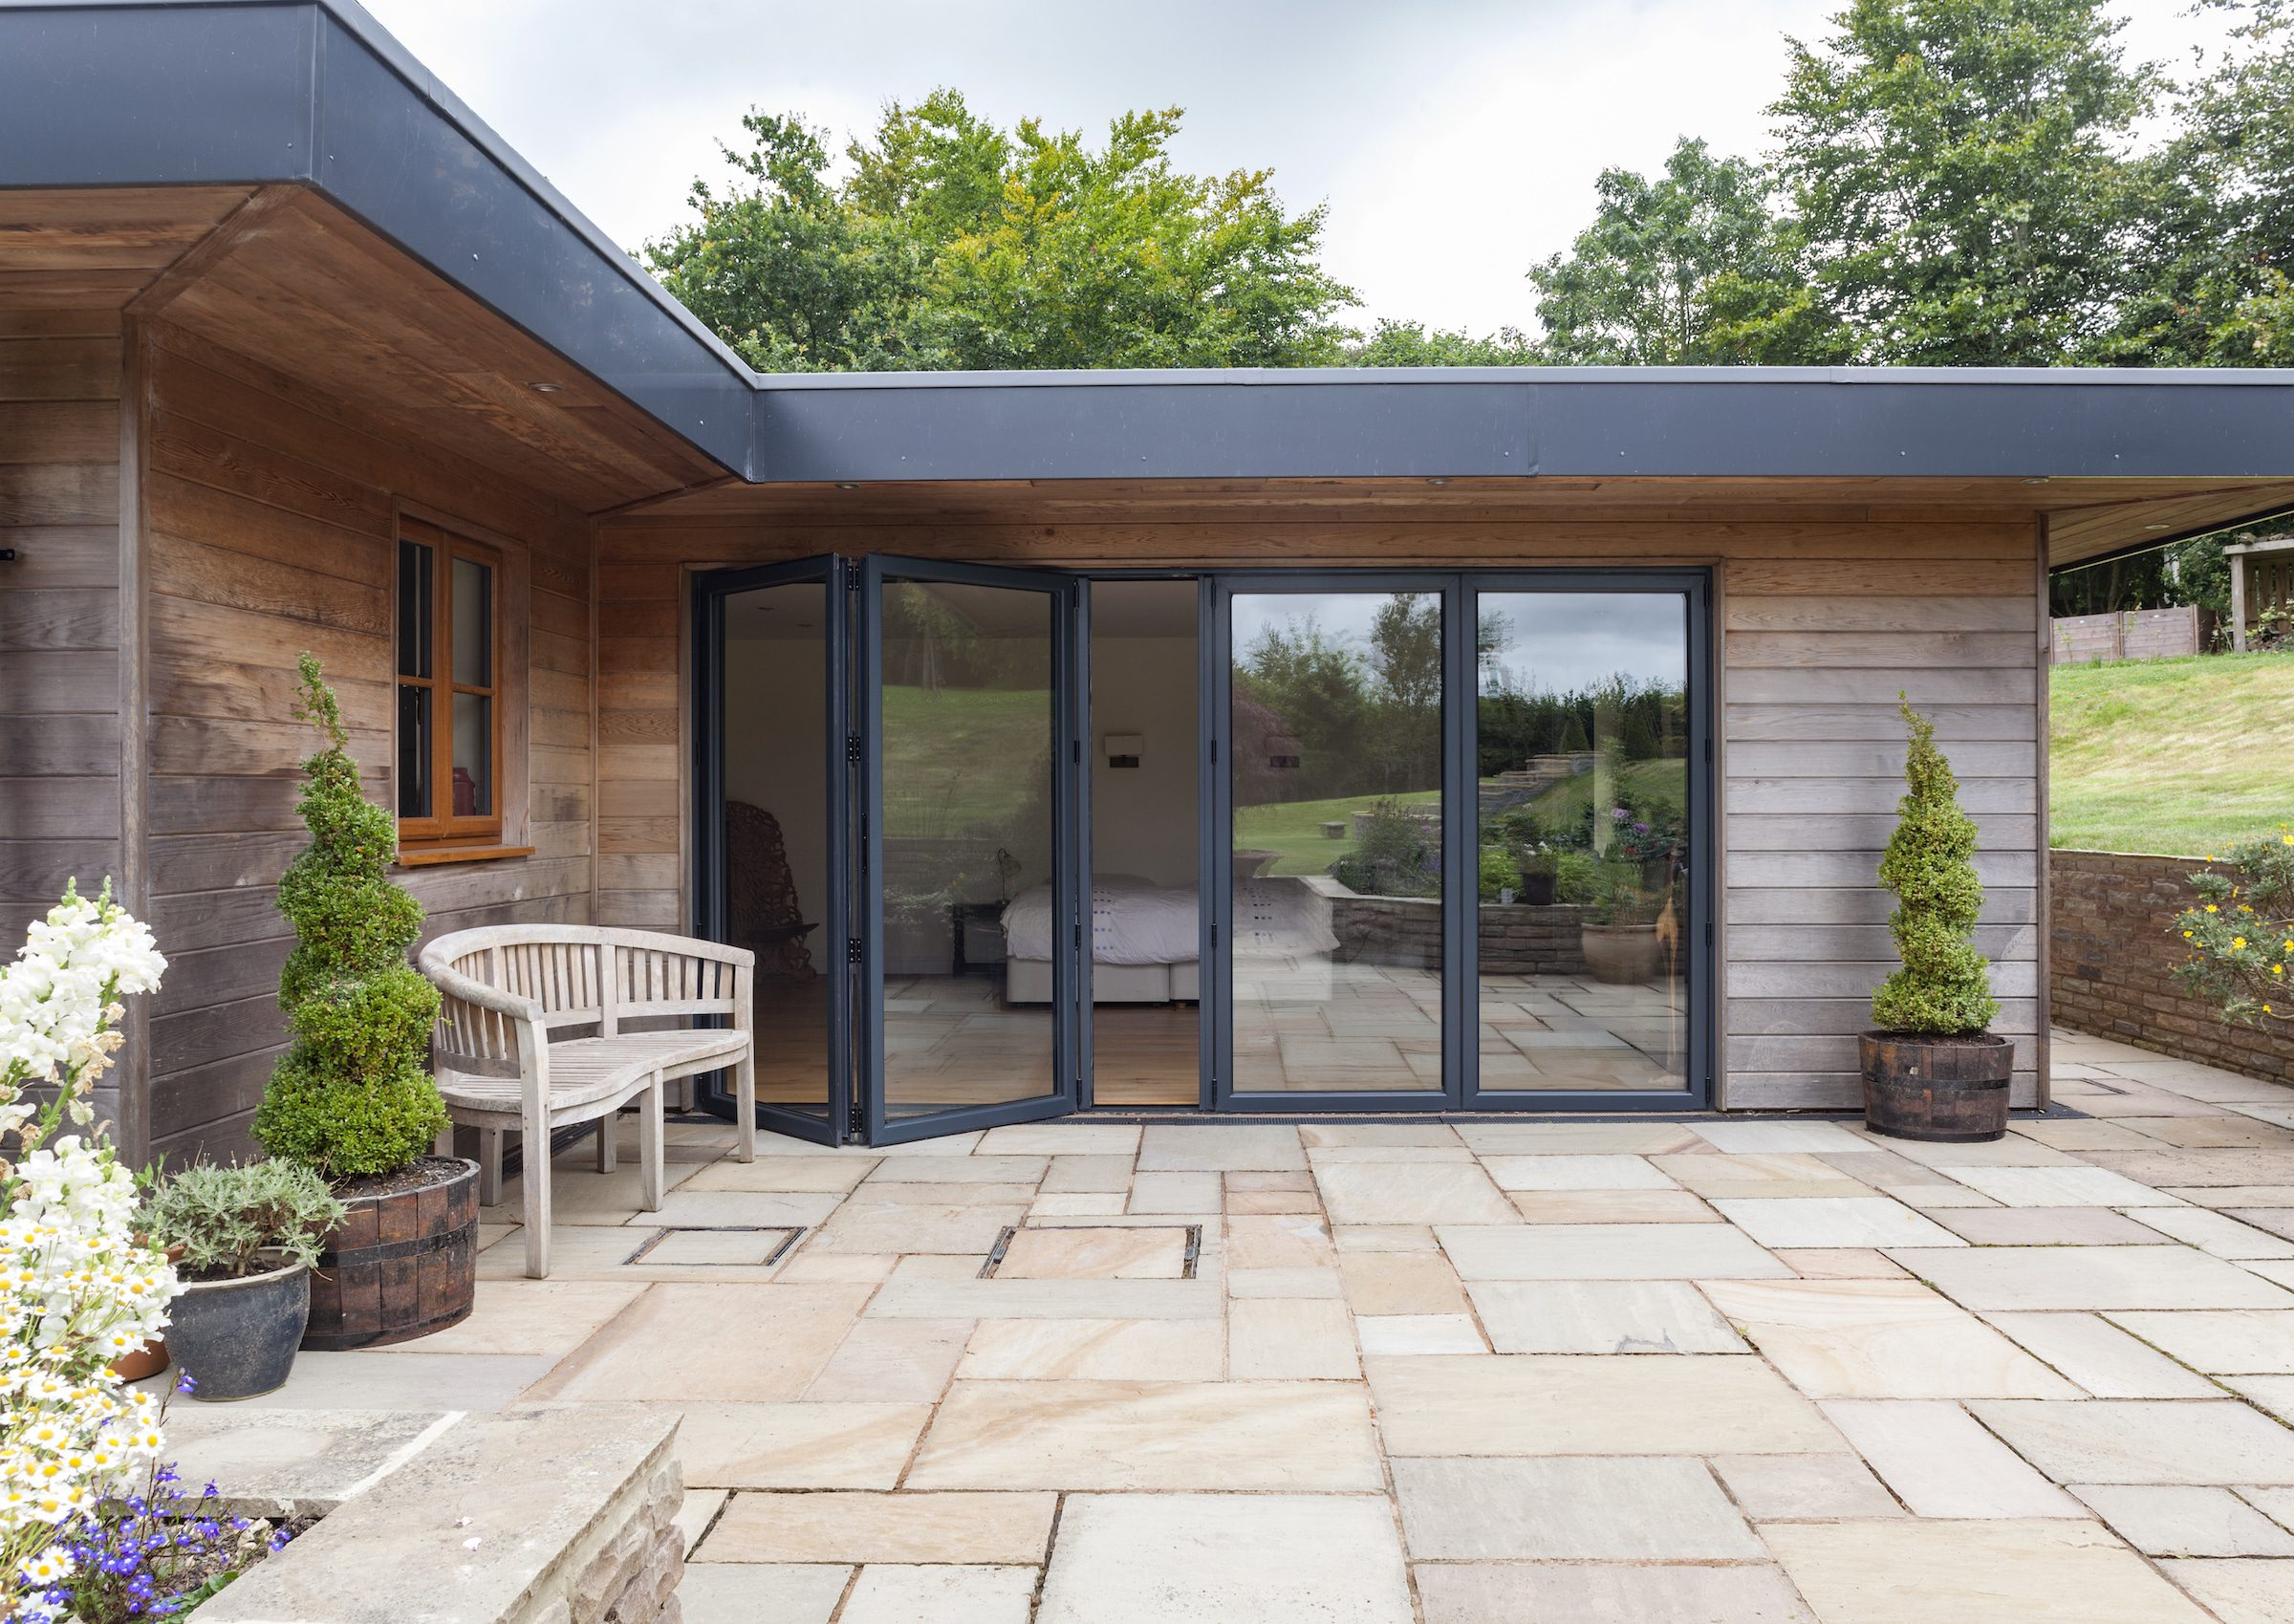 smart systems bifold doors showing the visofold bifold doors 6000 model in a modern extension with wood cladding